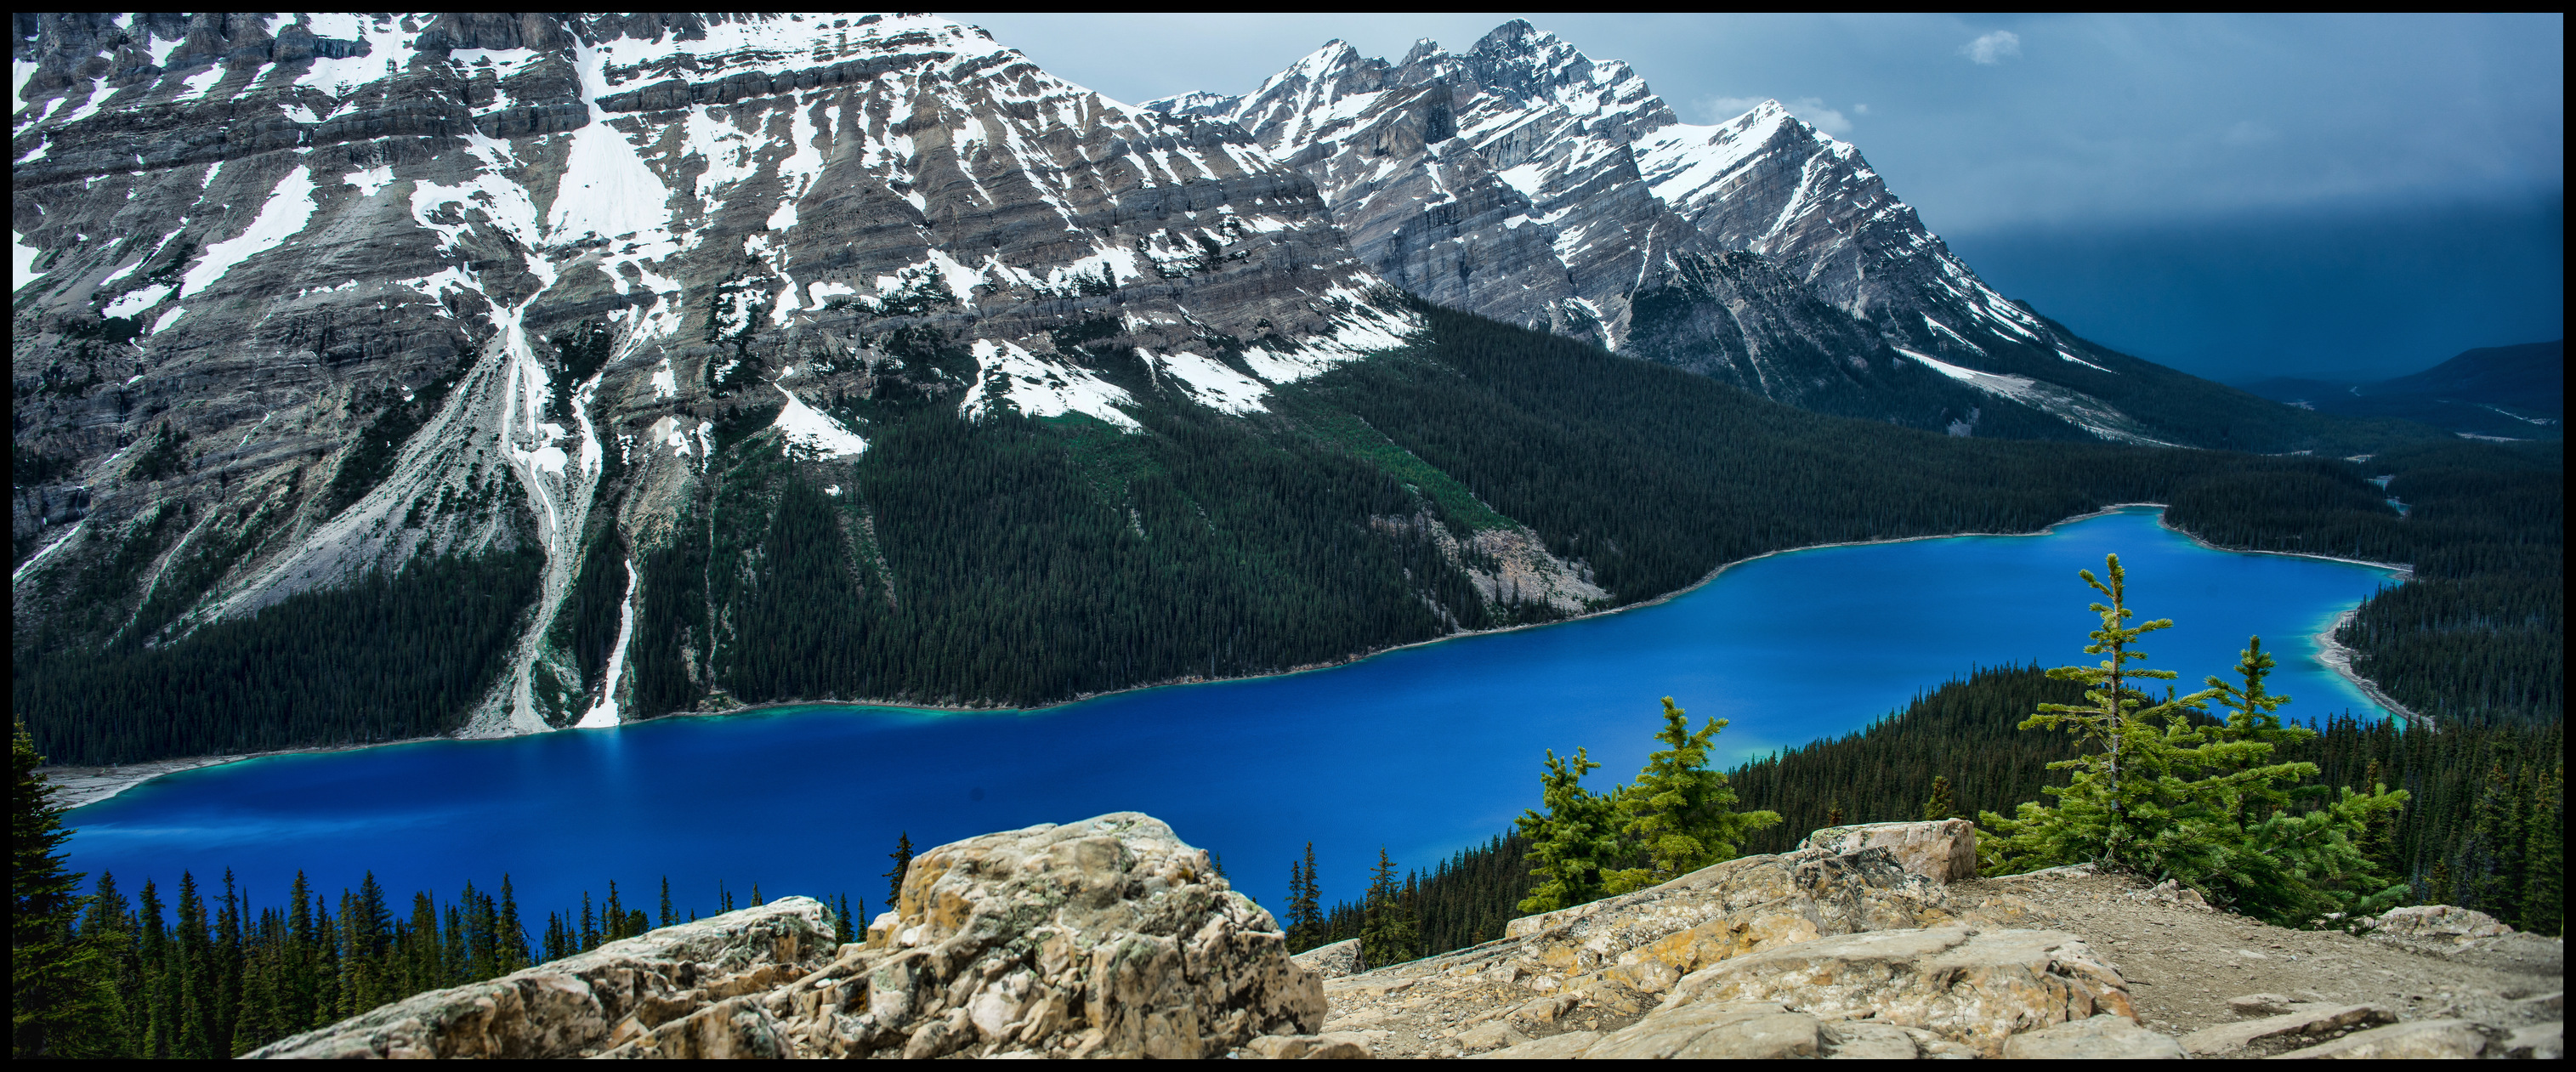 Peyto Lake spring colours in May, after a rainstorm Sony A7 / Canon FD Tilt Shift 35 2.8